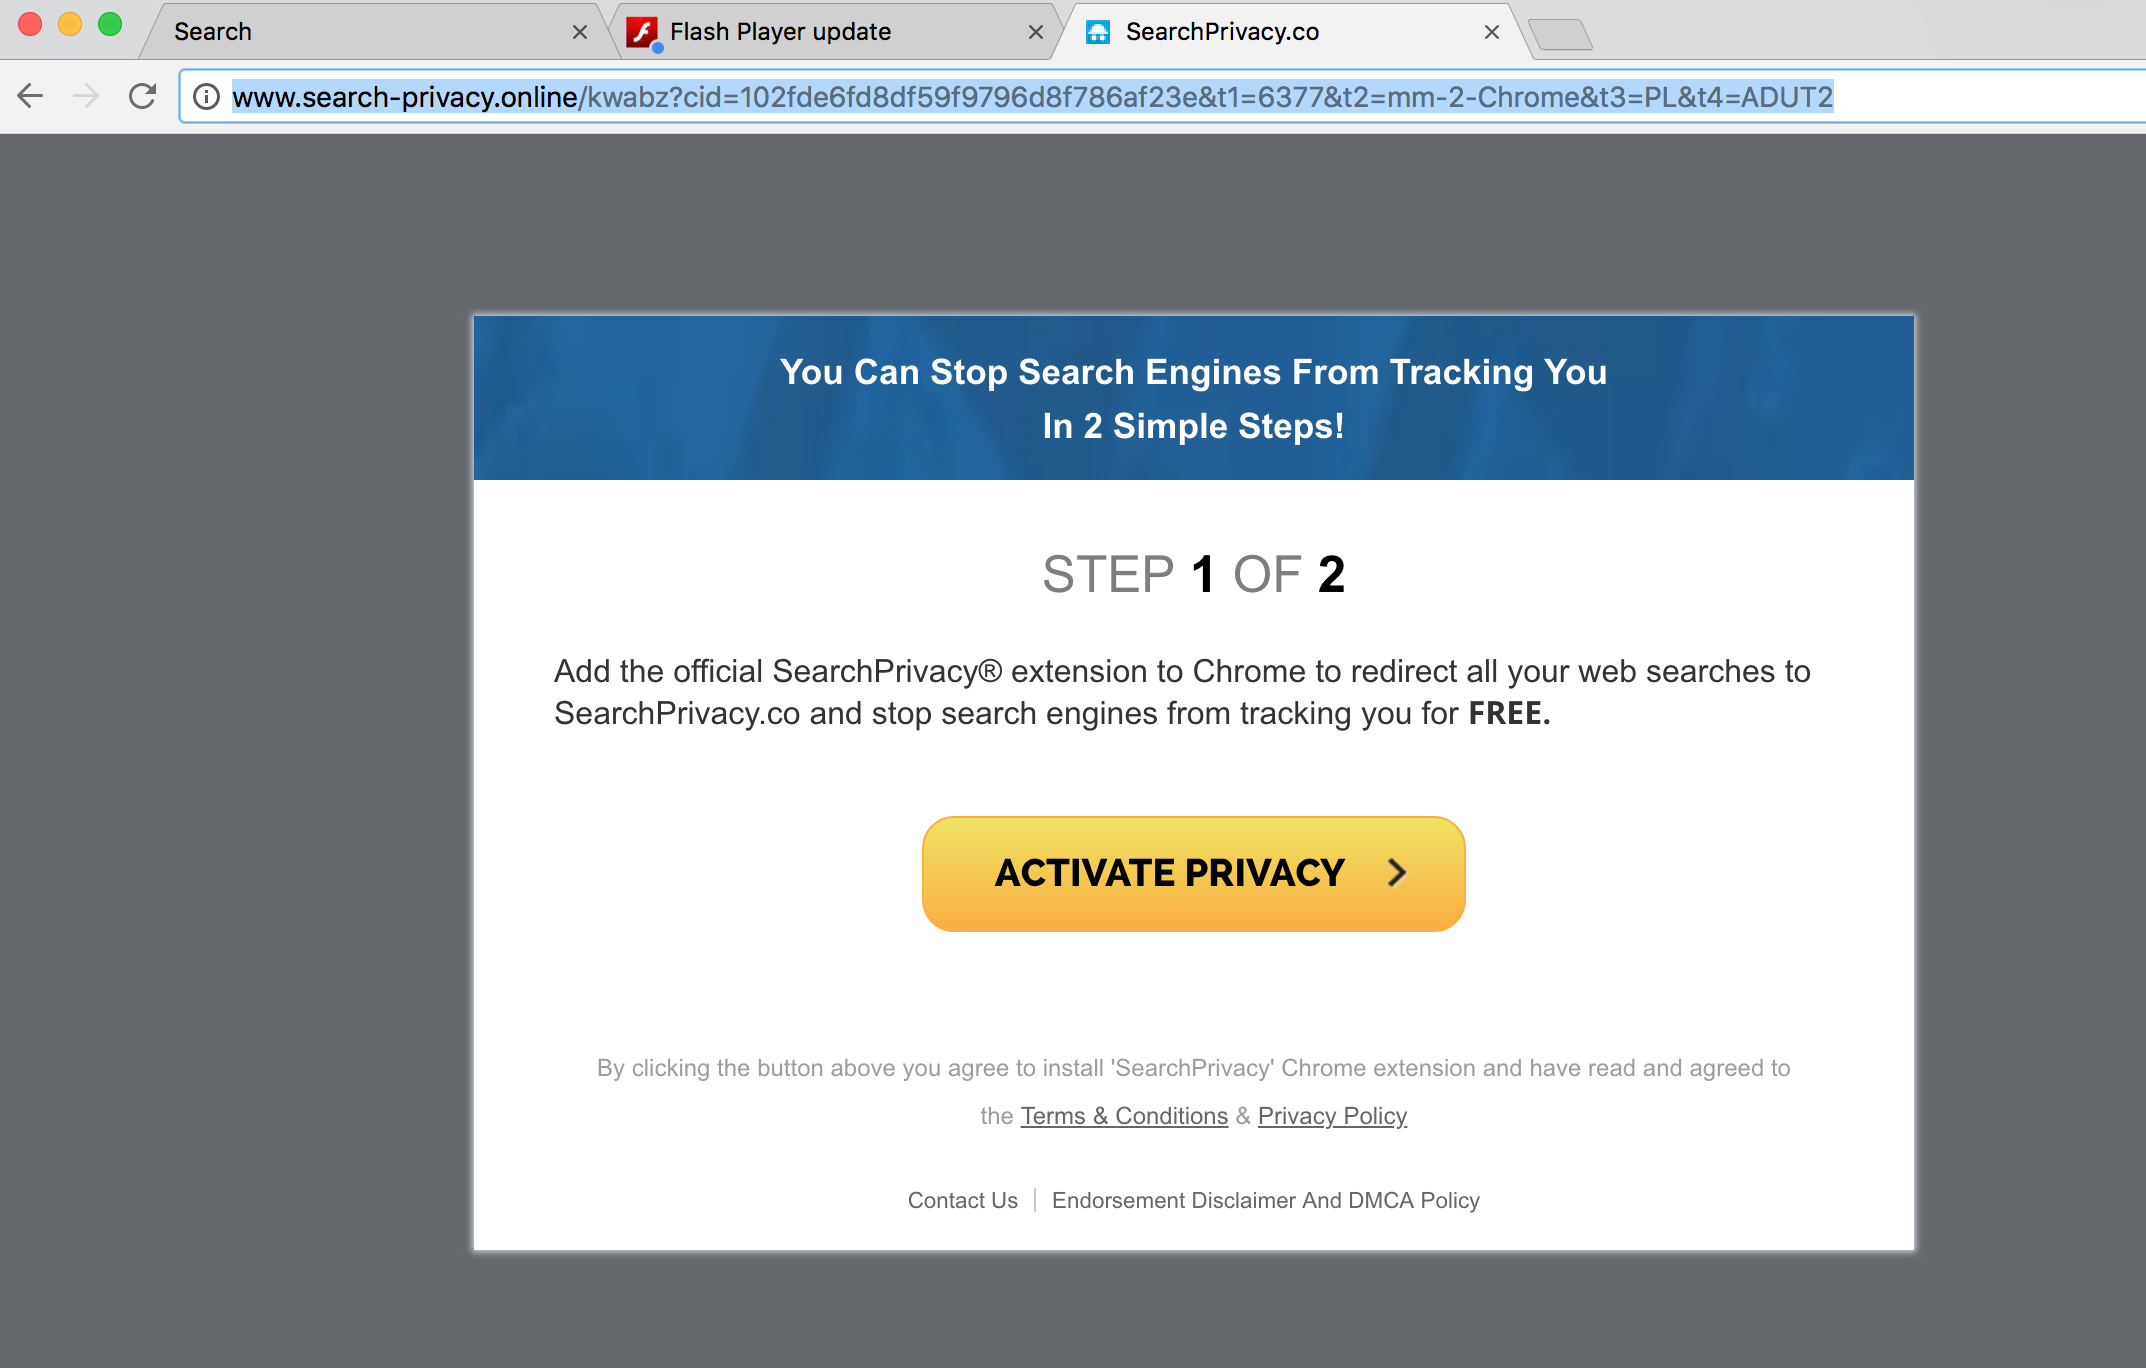 Search-privacy.online pop-up in Google Chrome.